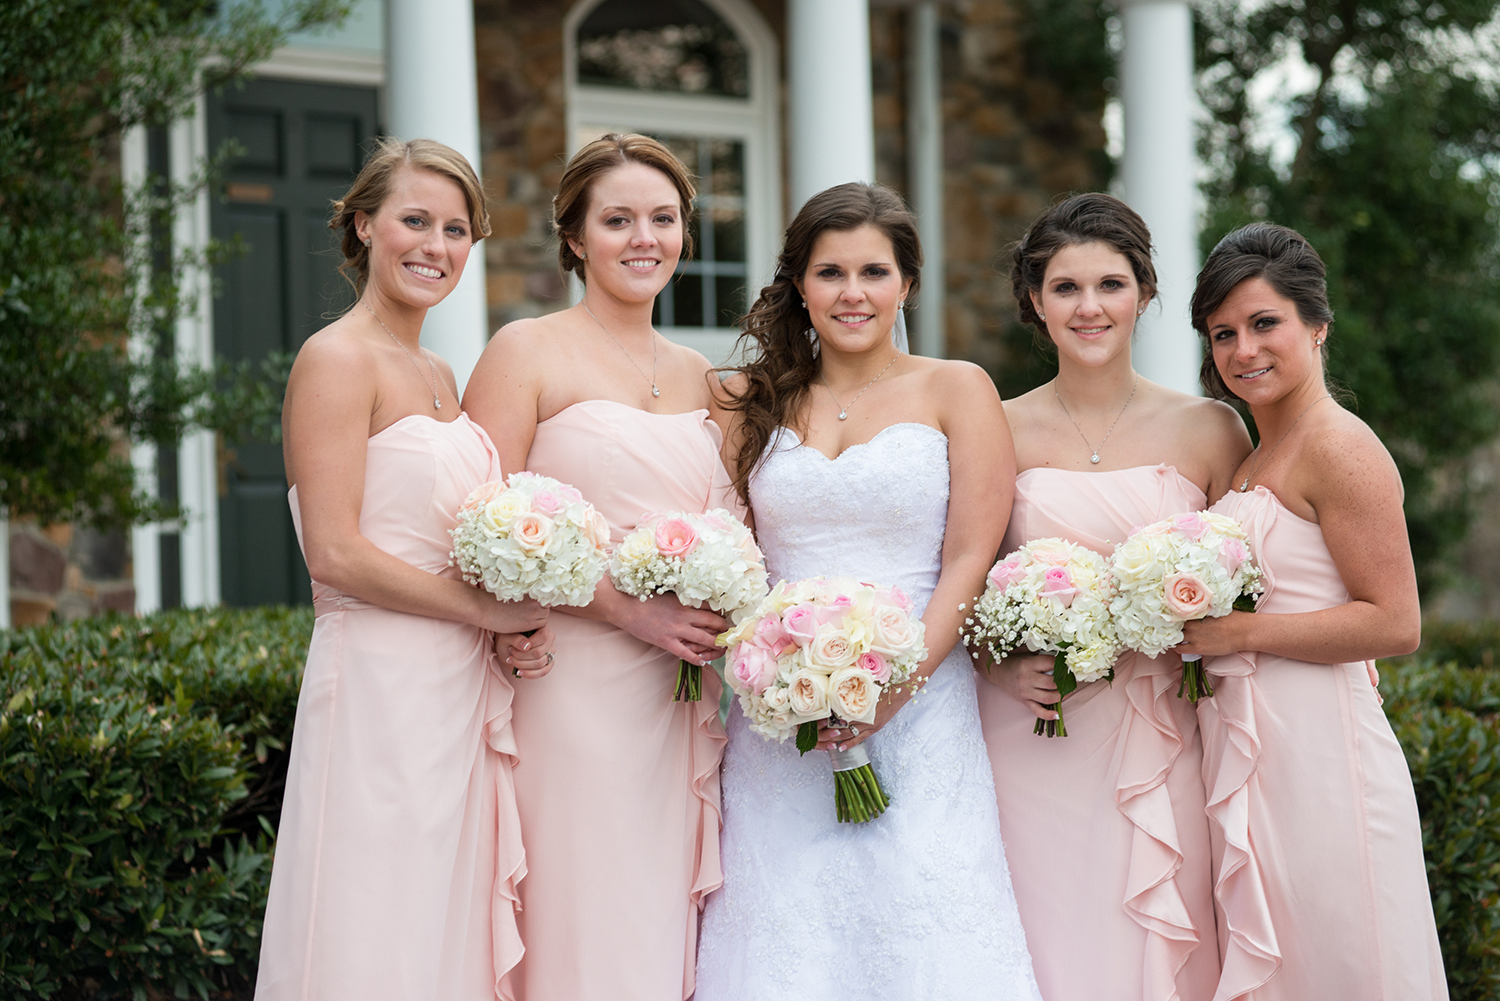 bride and bridesmaids in blush pink dresses